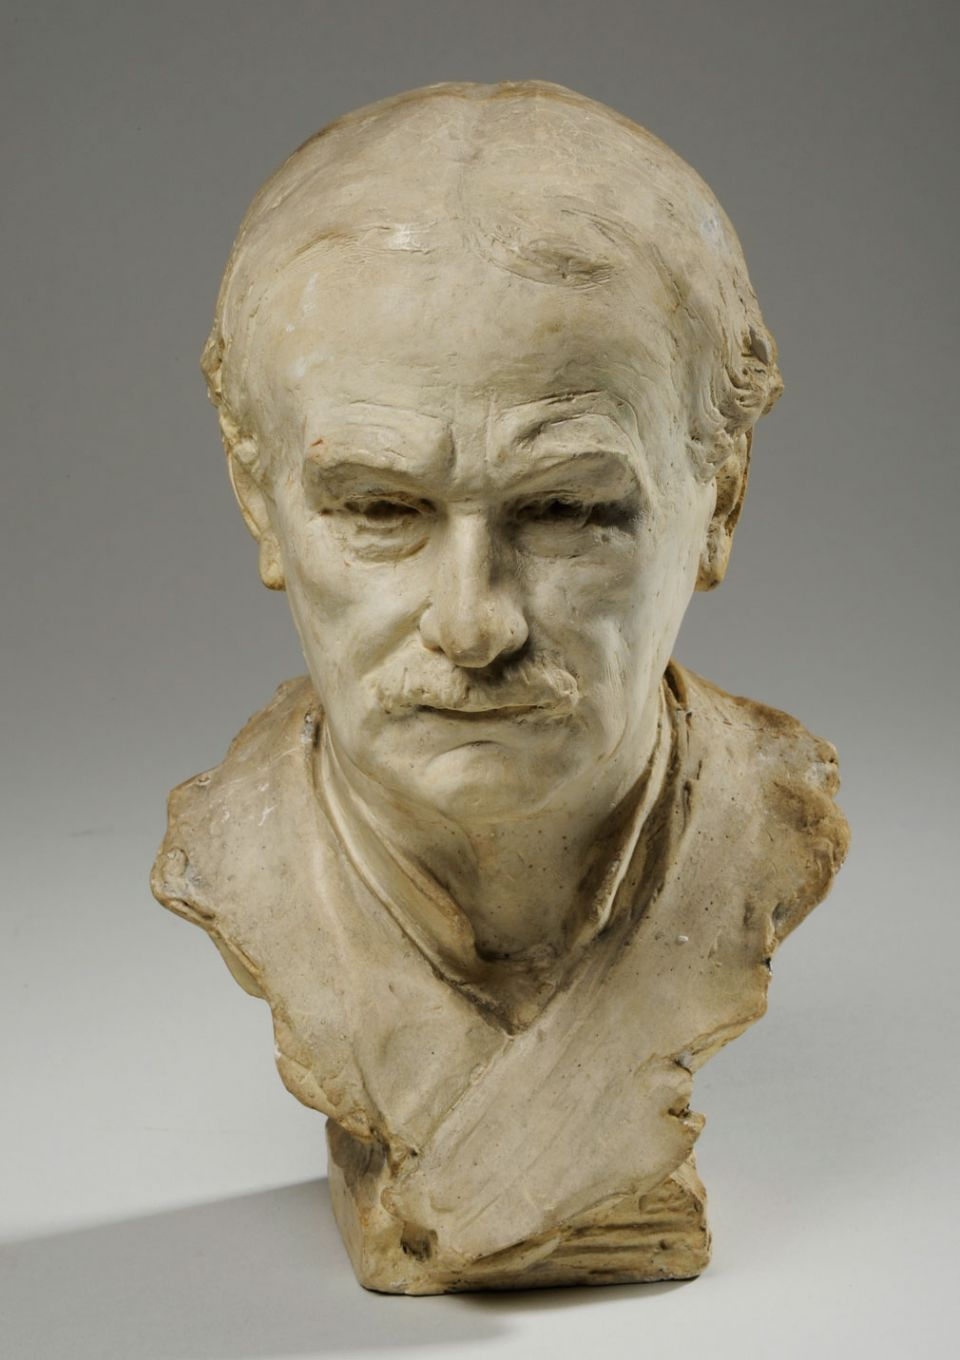 William Hamo Thornycroft, 'Self-Portrait Bust' (1923)